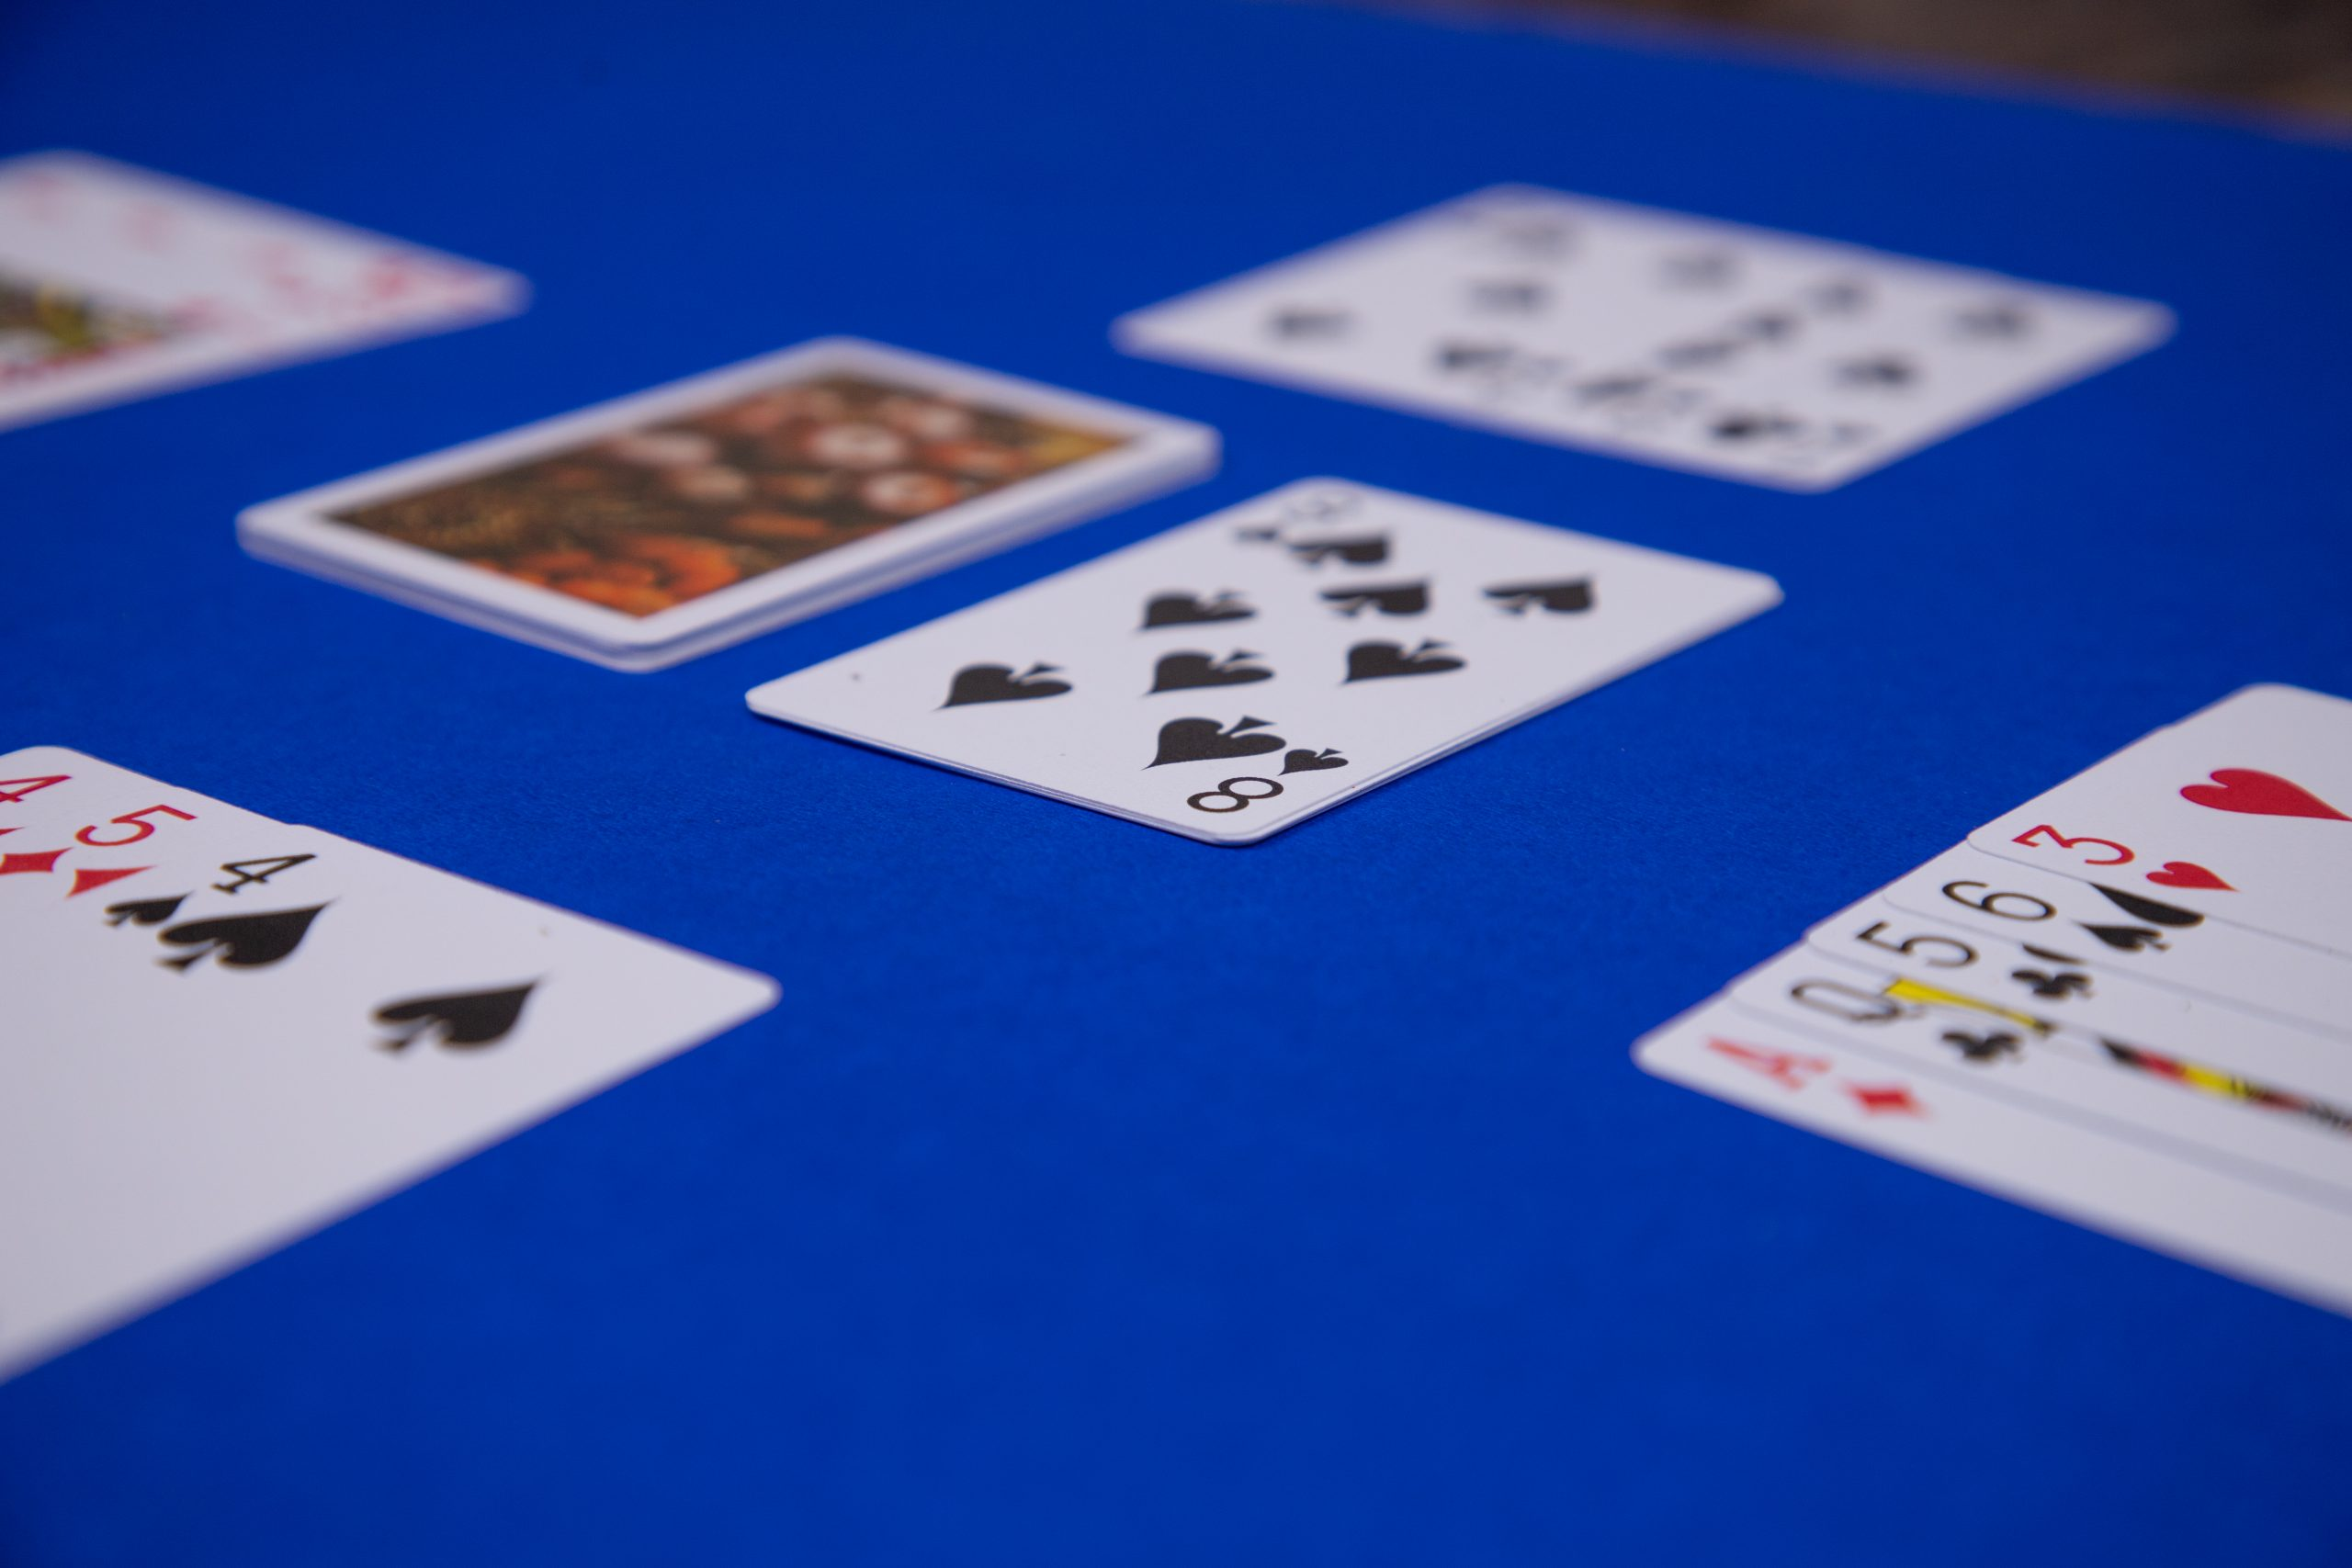 Crazy Eights Game